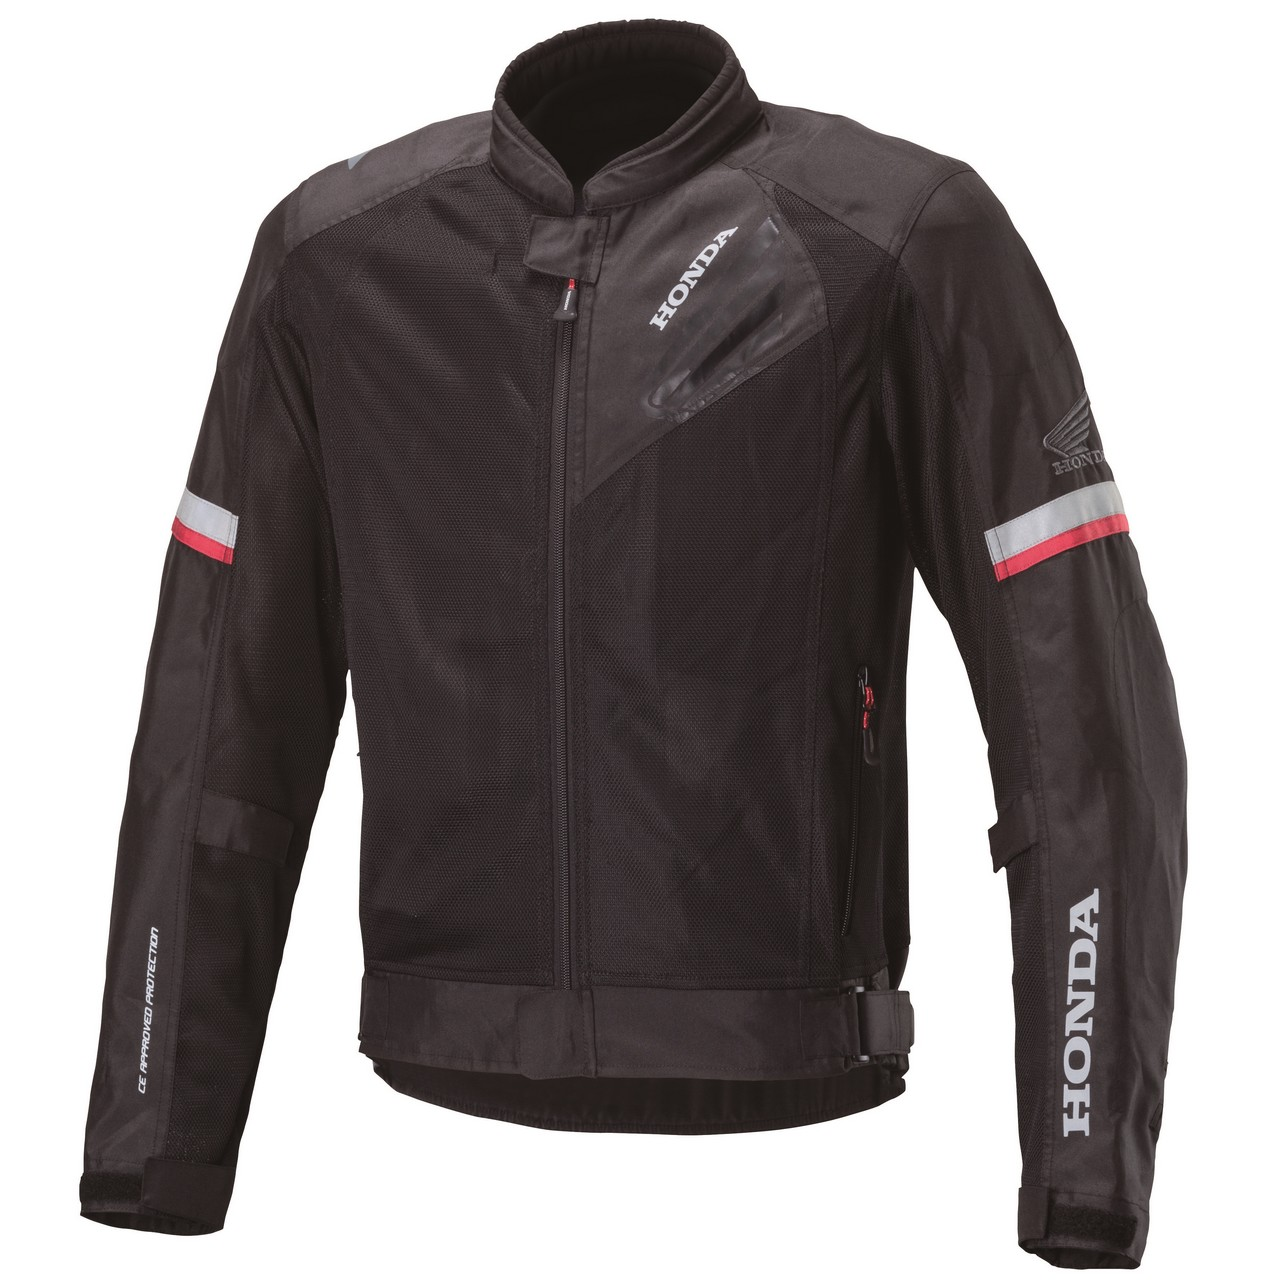 HONDA RIDING GEAR Riding Mesh Jacket Light